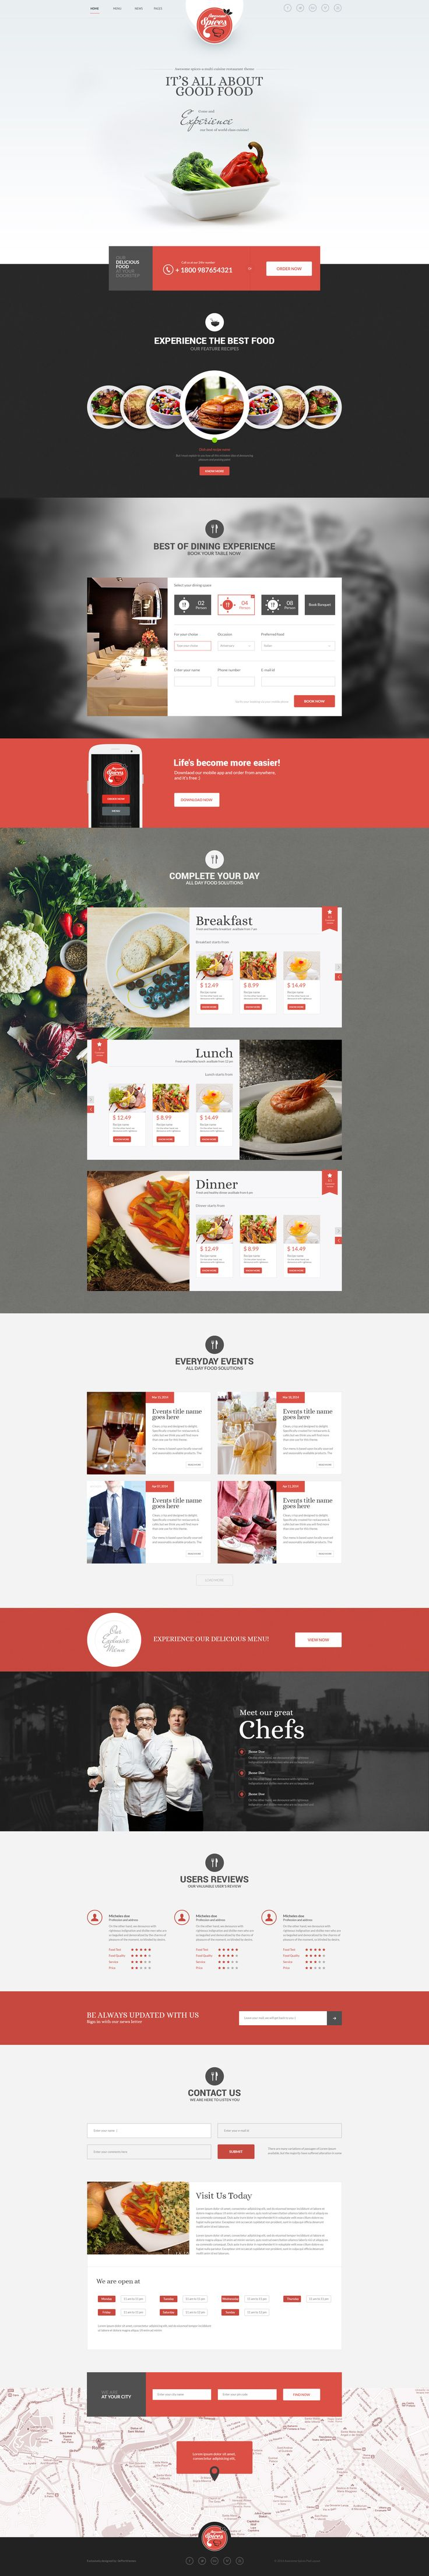 Awesome Spice-One Page Restaurant Theme • Download ↓ https://themeforest.net/item/awesome-spiceone-page-restaurant-theme/7873061?ref=pxcr